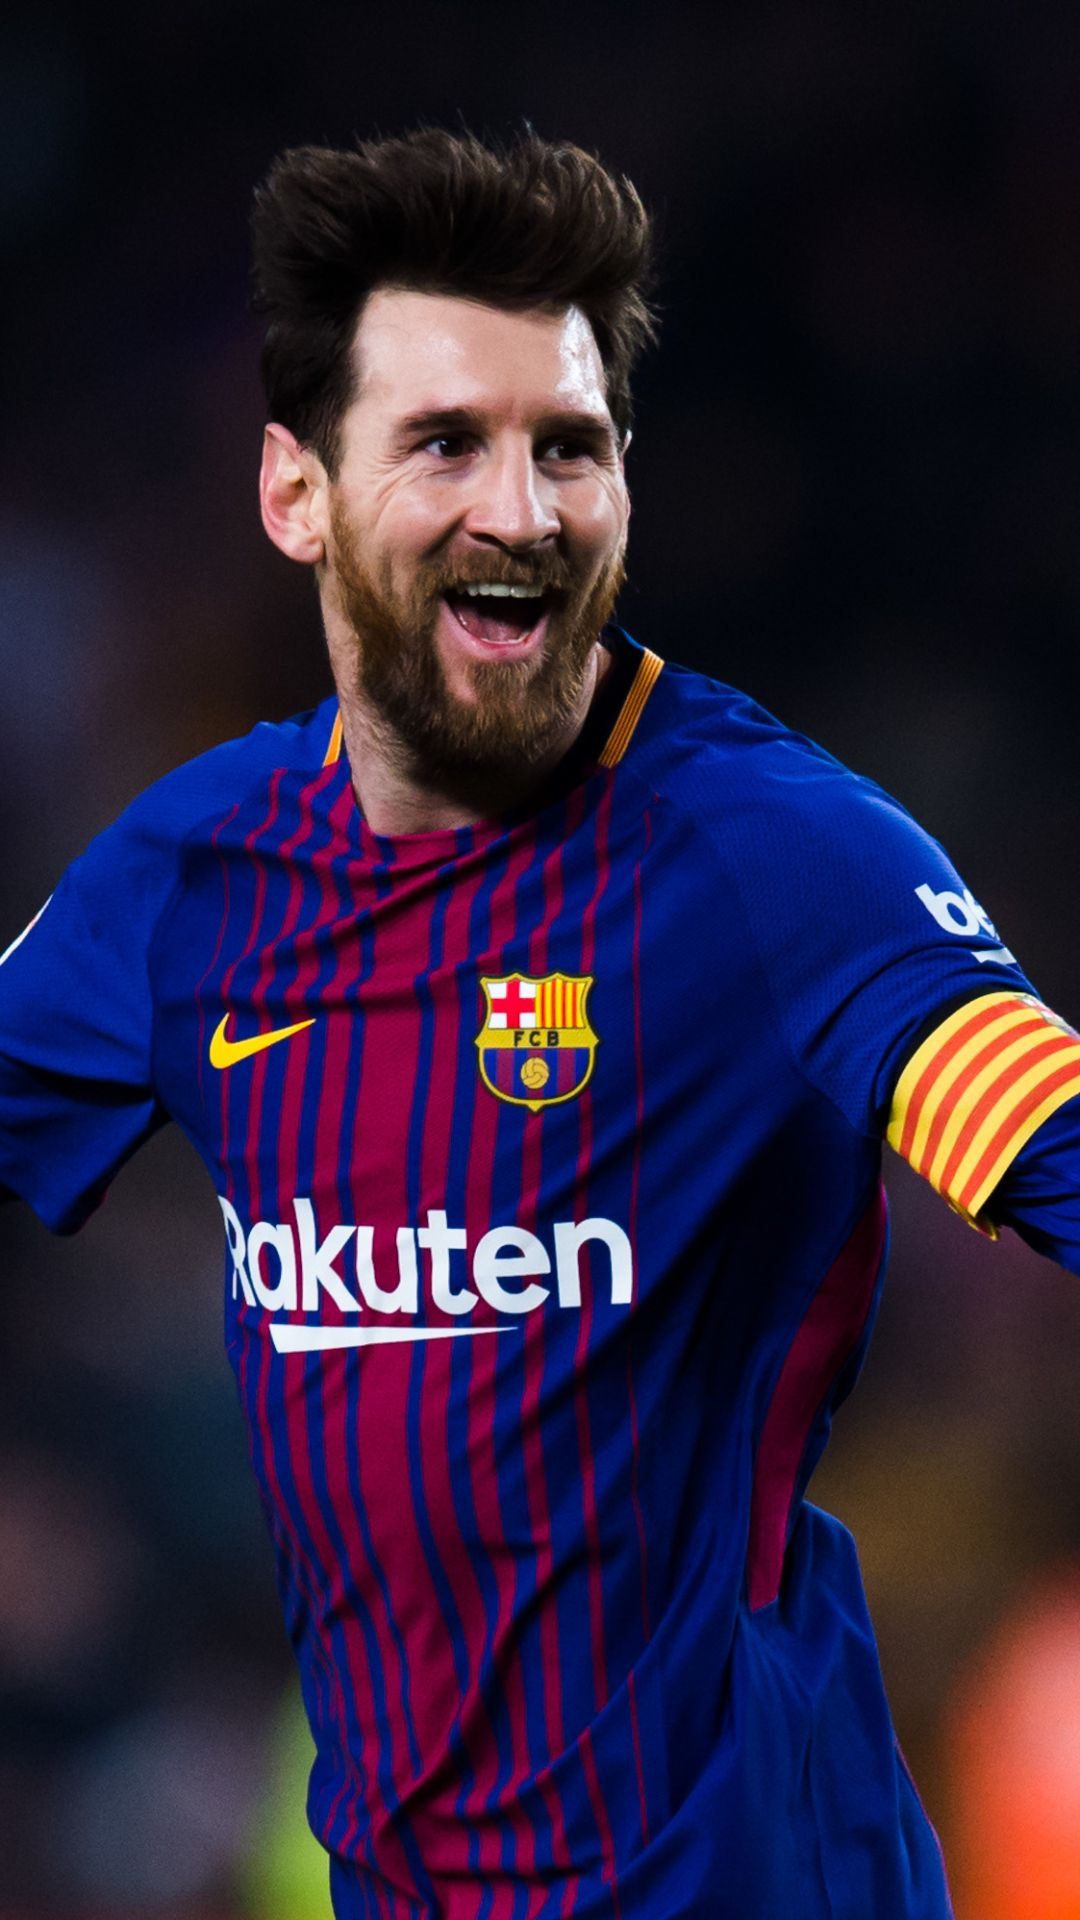 Cool Messi Wallpaper Download Is Best Wallpaper On Flowerswallpaper Info If You Like It Iphone Android Wallpape In 2020 Lionel Messi Lionel Messi Wallpapers Messi